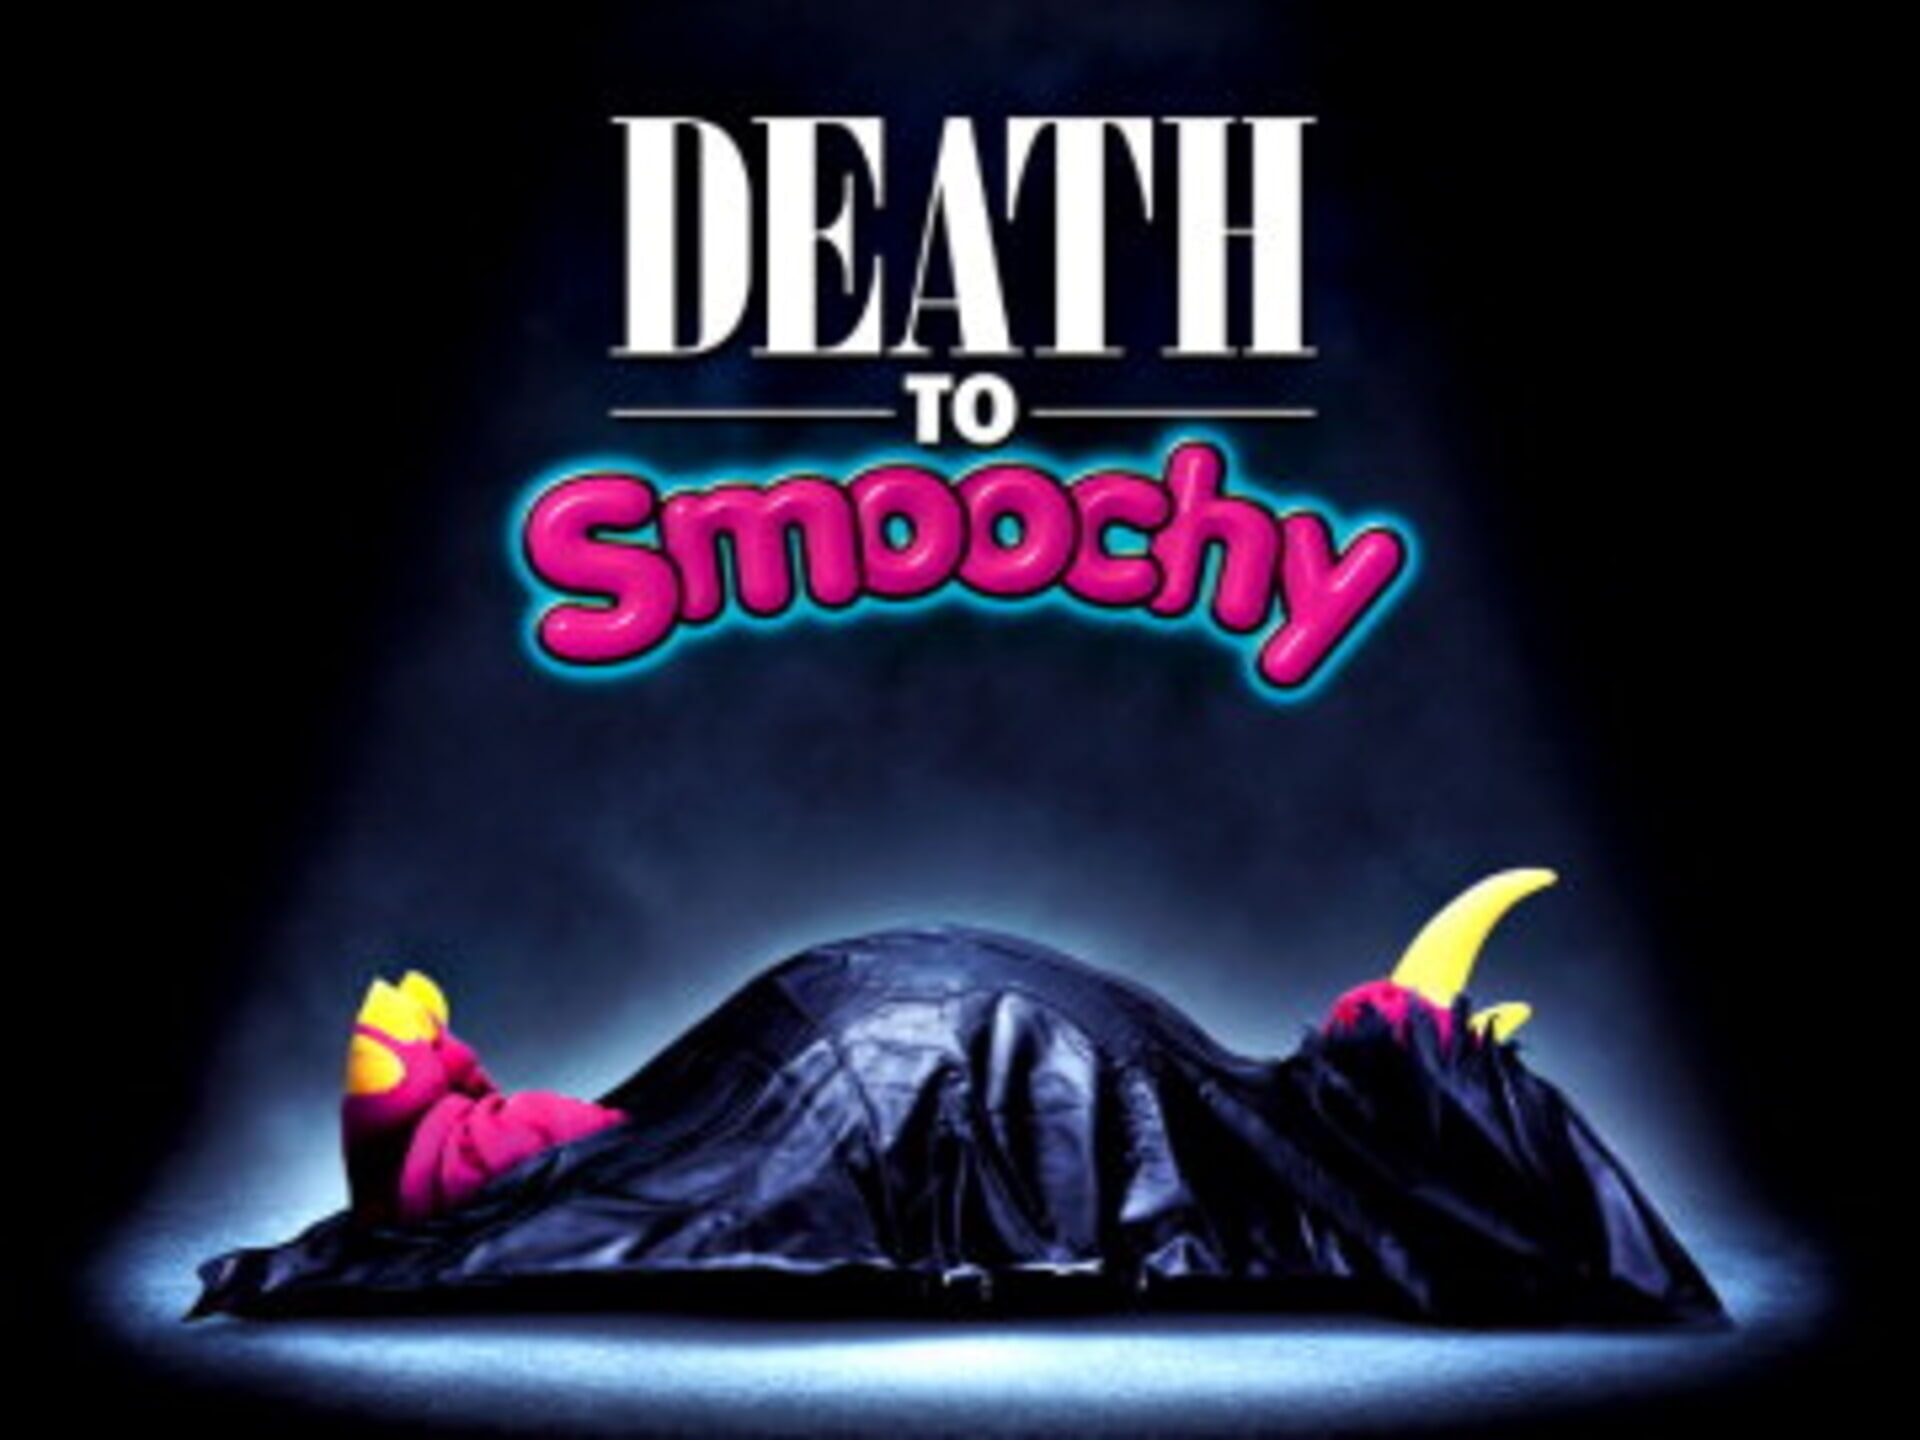 Death to Smoochy - Image 1